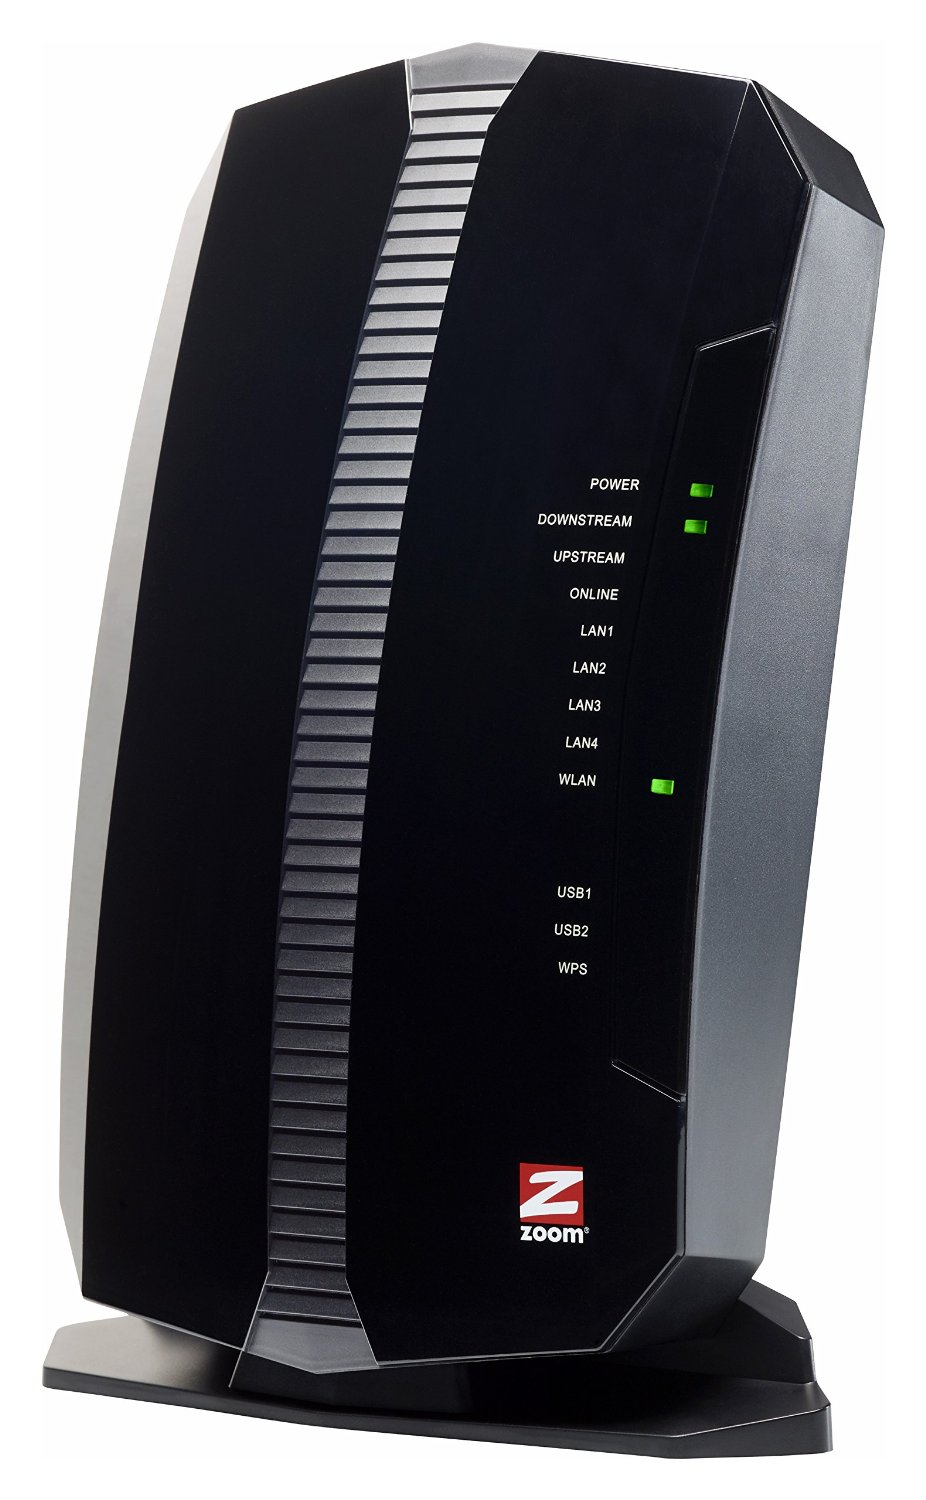 Zoom Model 5354 DOCSIS 3.0 Cable Modem plus Wireless N300 Router